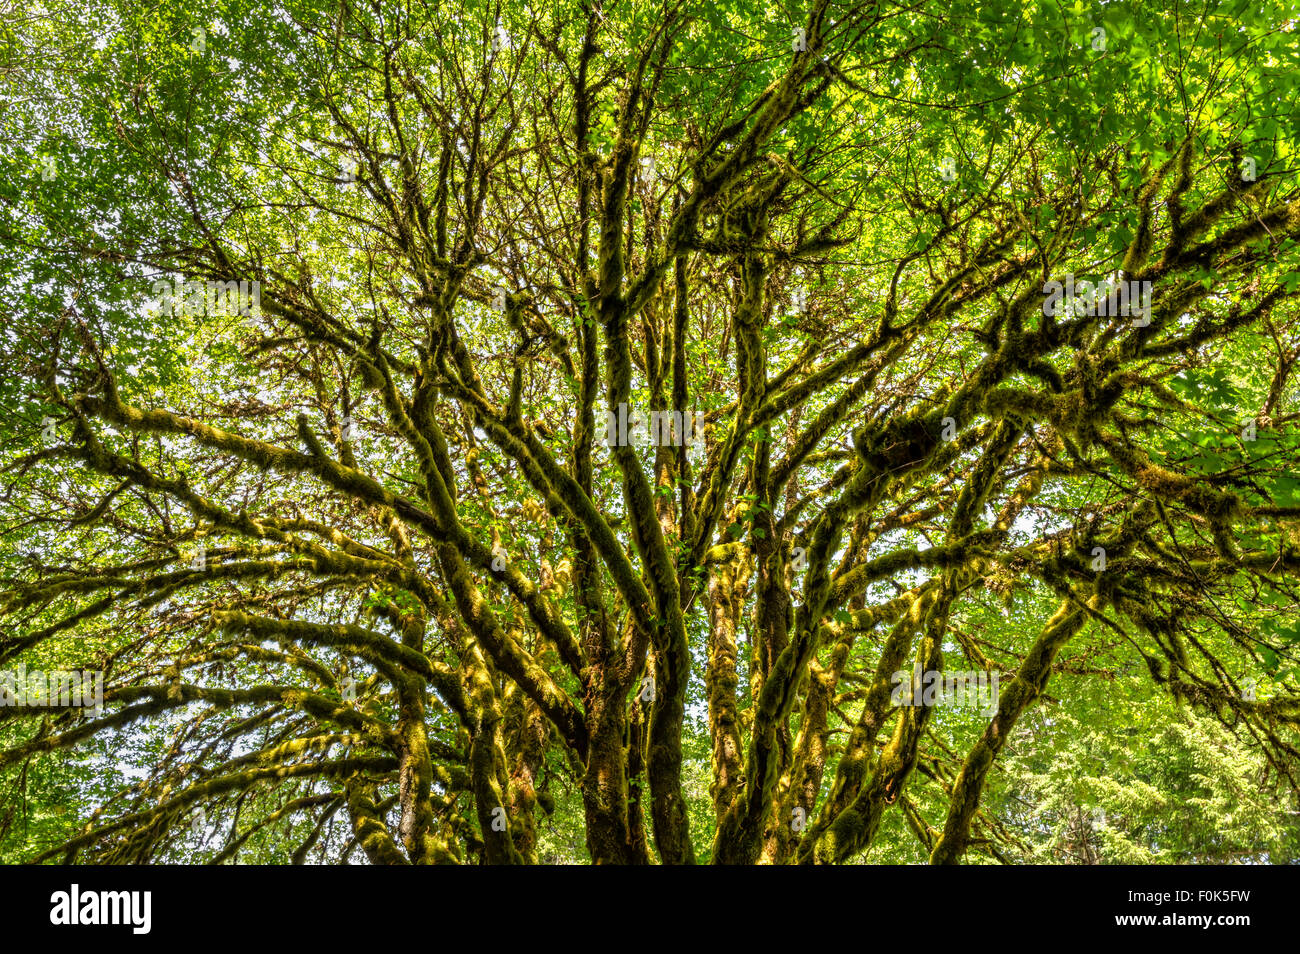 A sunlit bigleaf maple tree covered with epiphytic moss near Lake Crescent in Olympic National Park, Washington - Stock Image